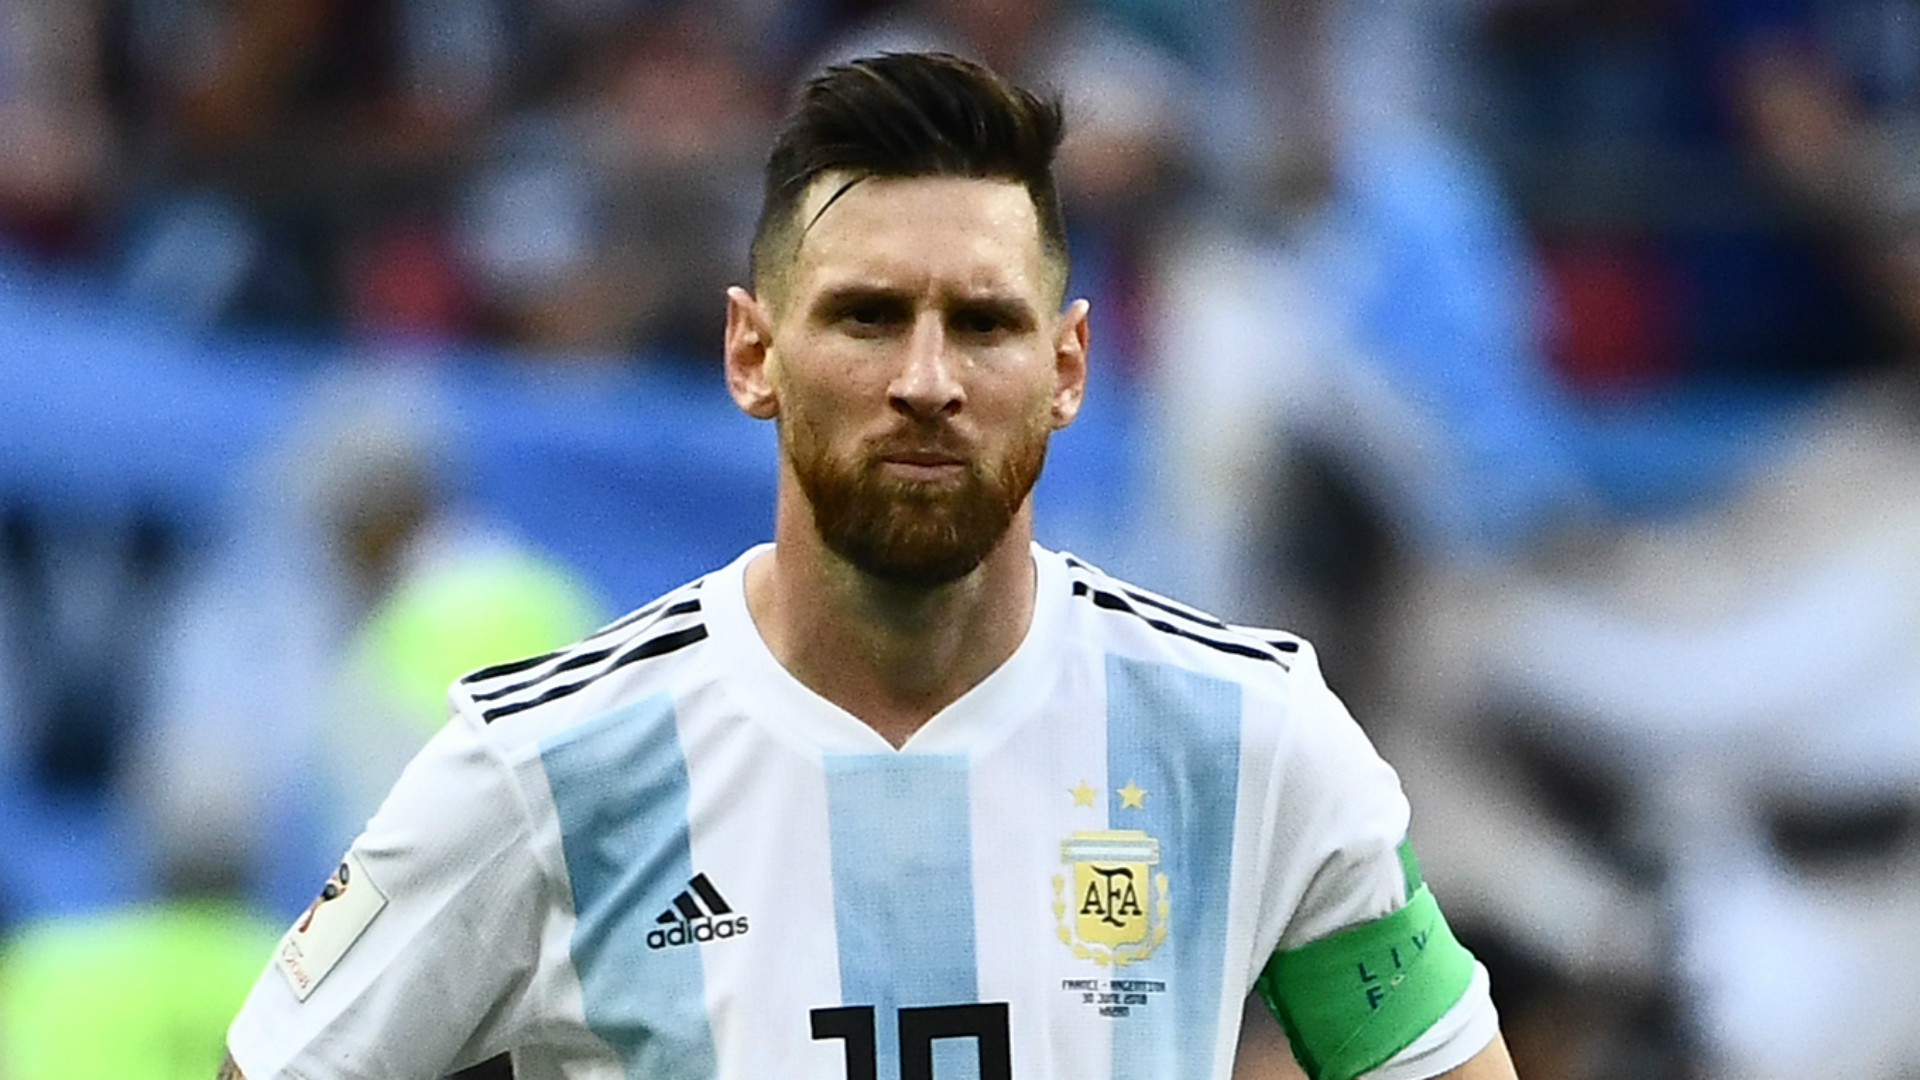 'It's useless making a leader' of Messi - Maradona mocks Argentina star